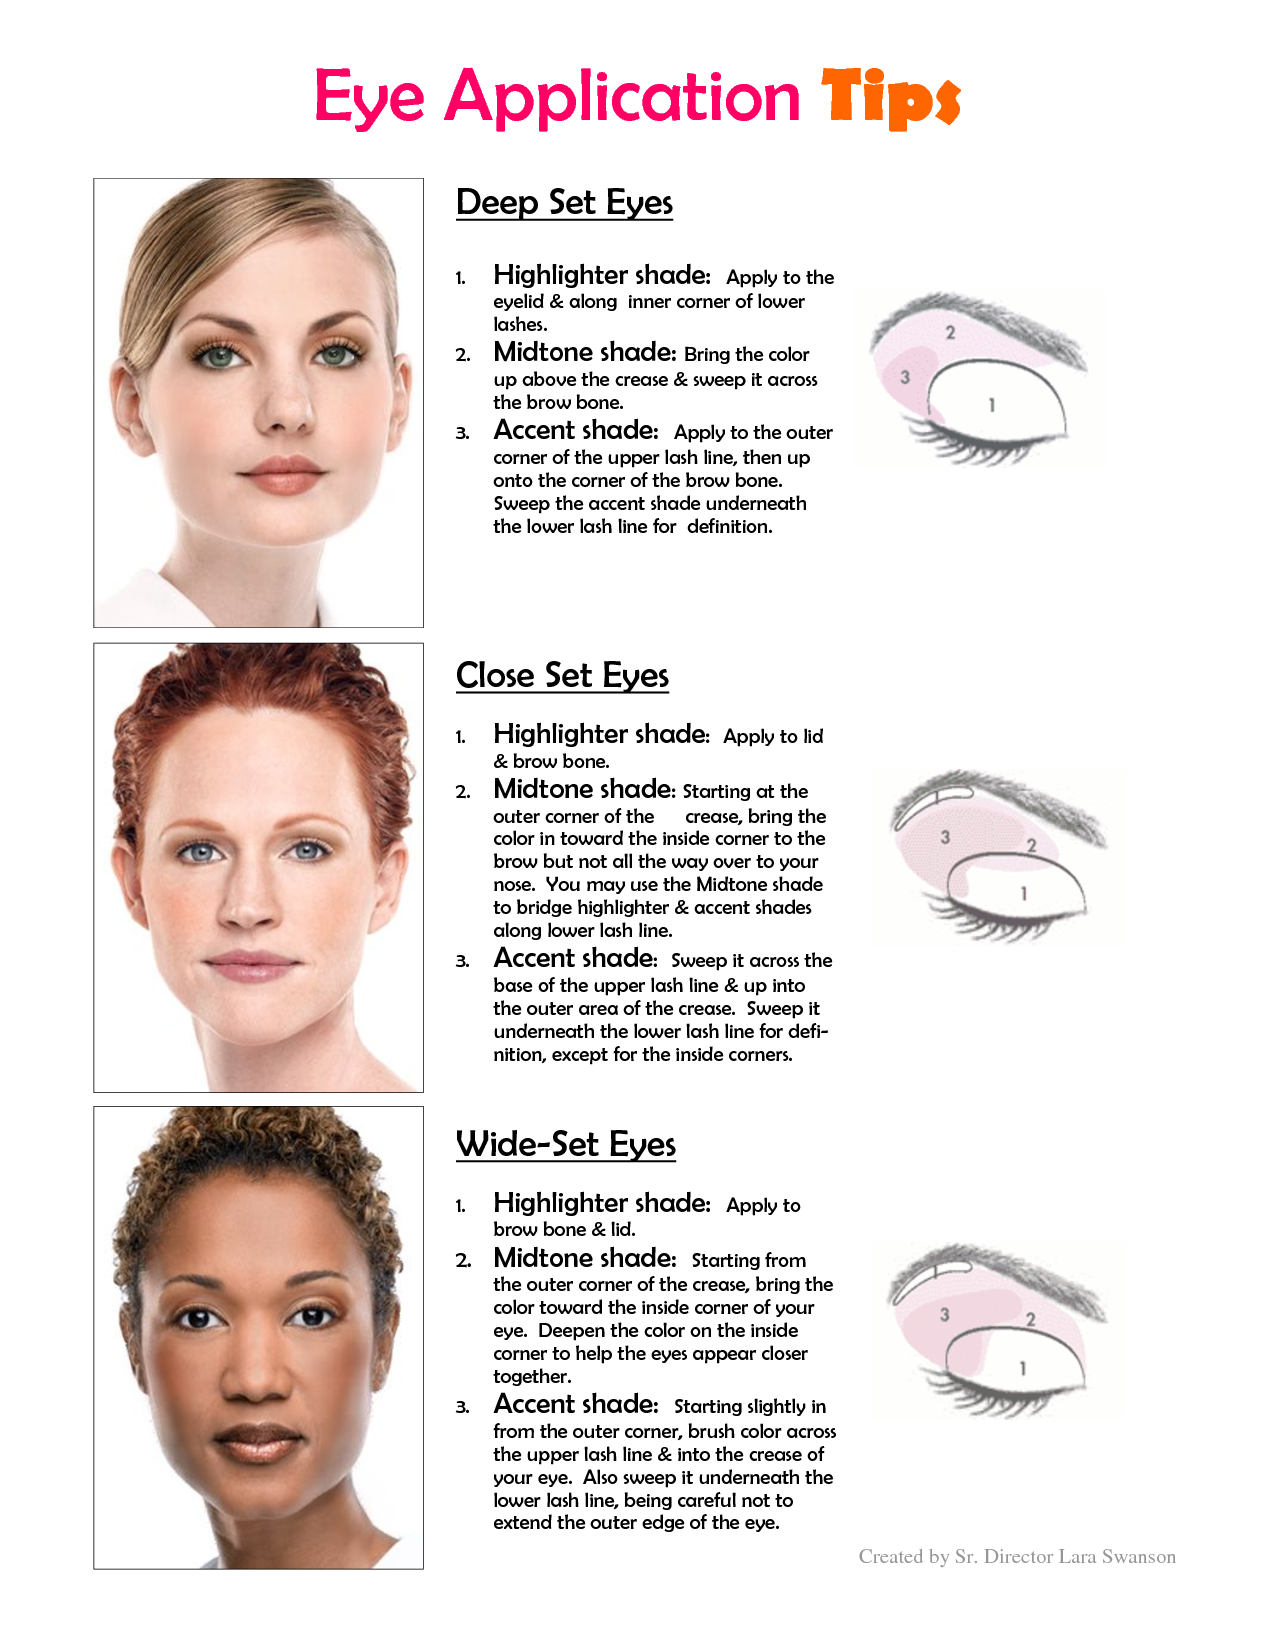 How To Apply Makeup To Deep Set Eyes Cosmeticstutor